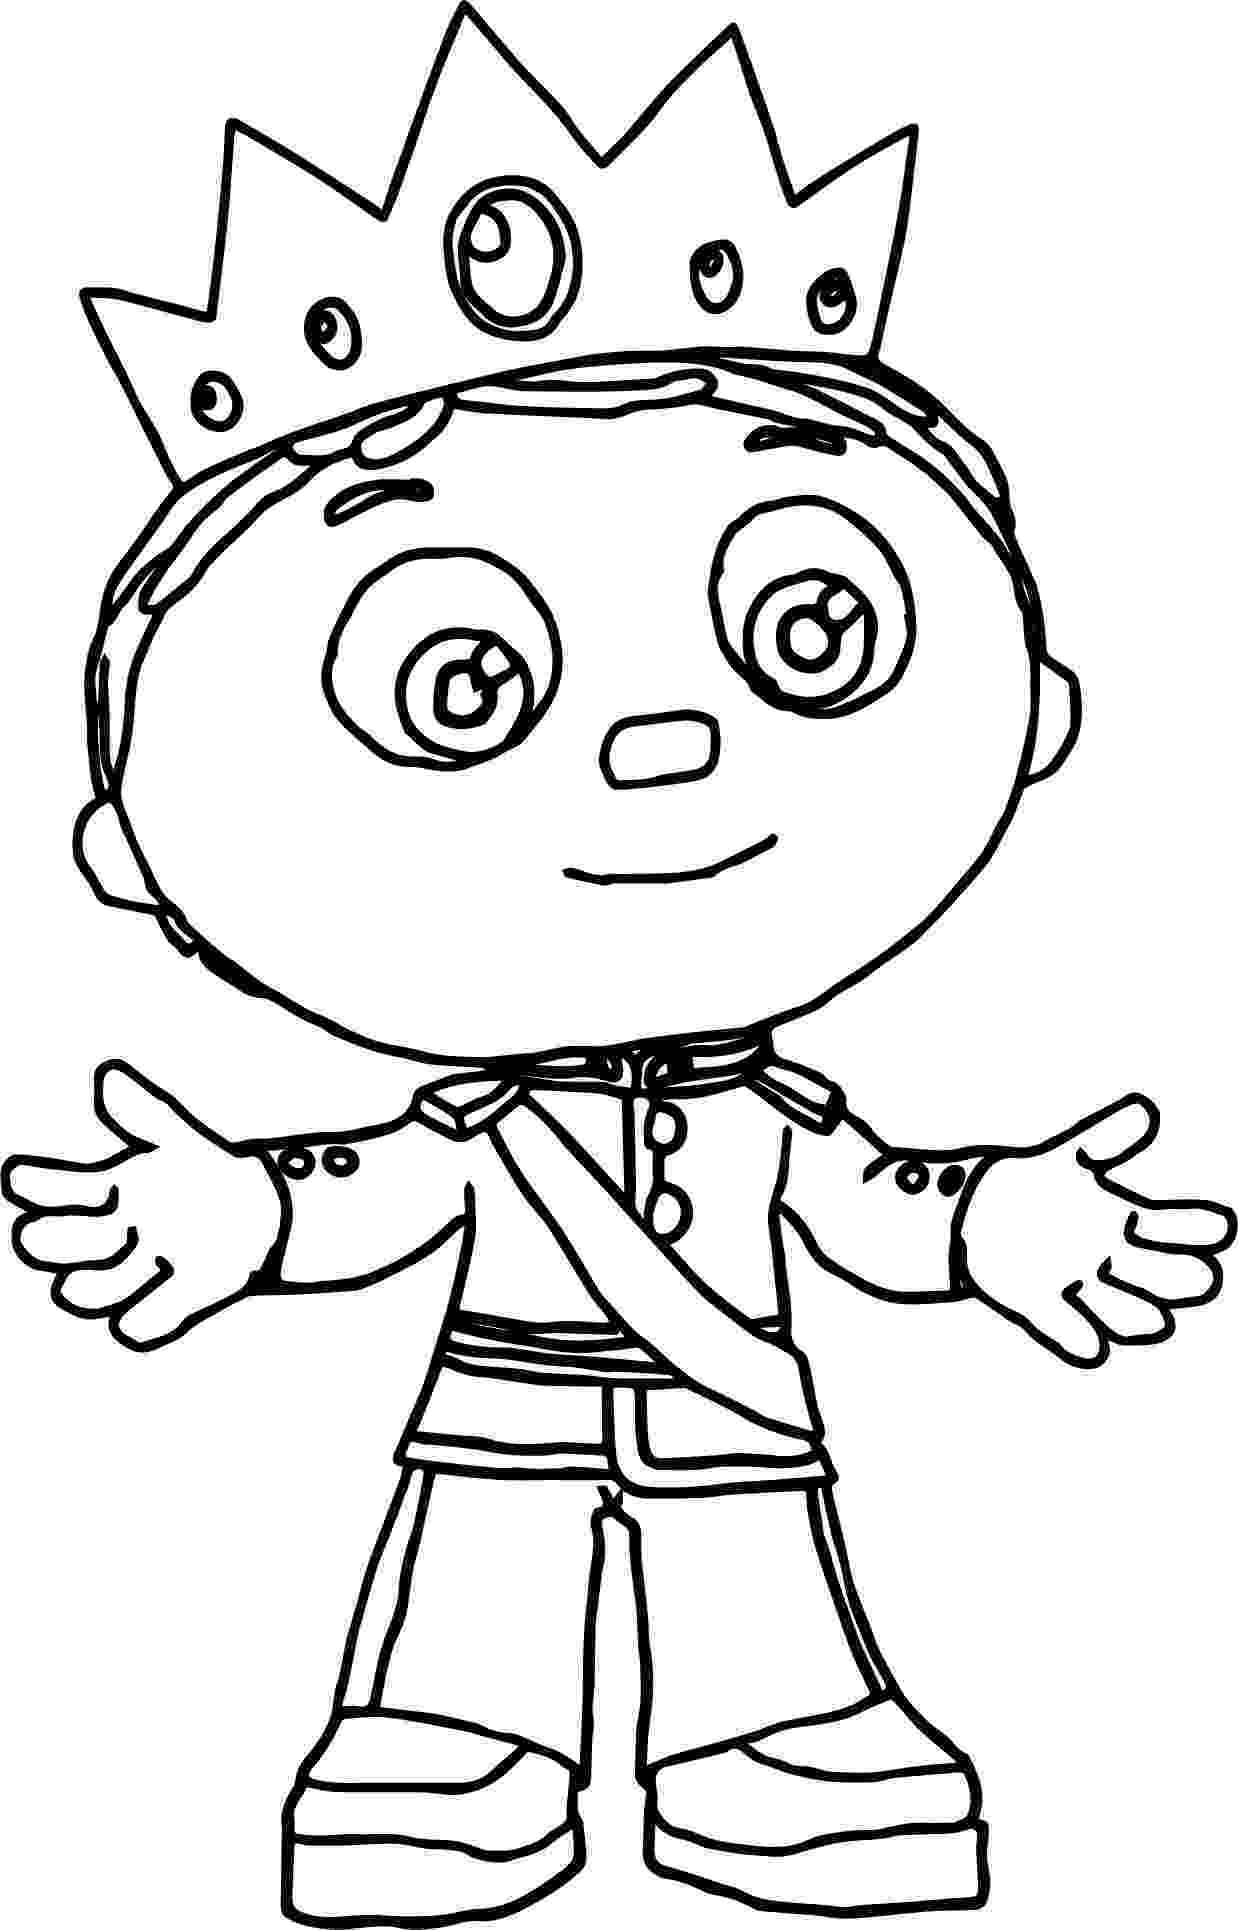 free printable coloring pages for toddlers transmissionpress coloring page toddlers pages for printable free coloring